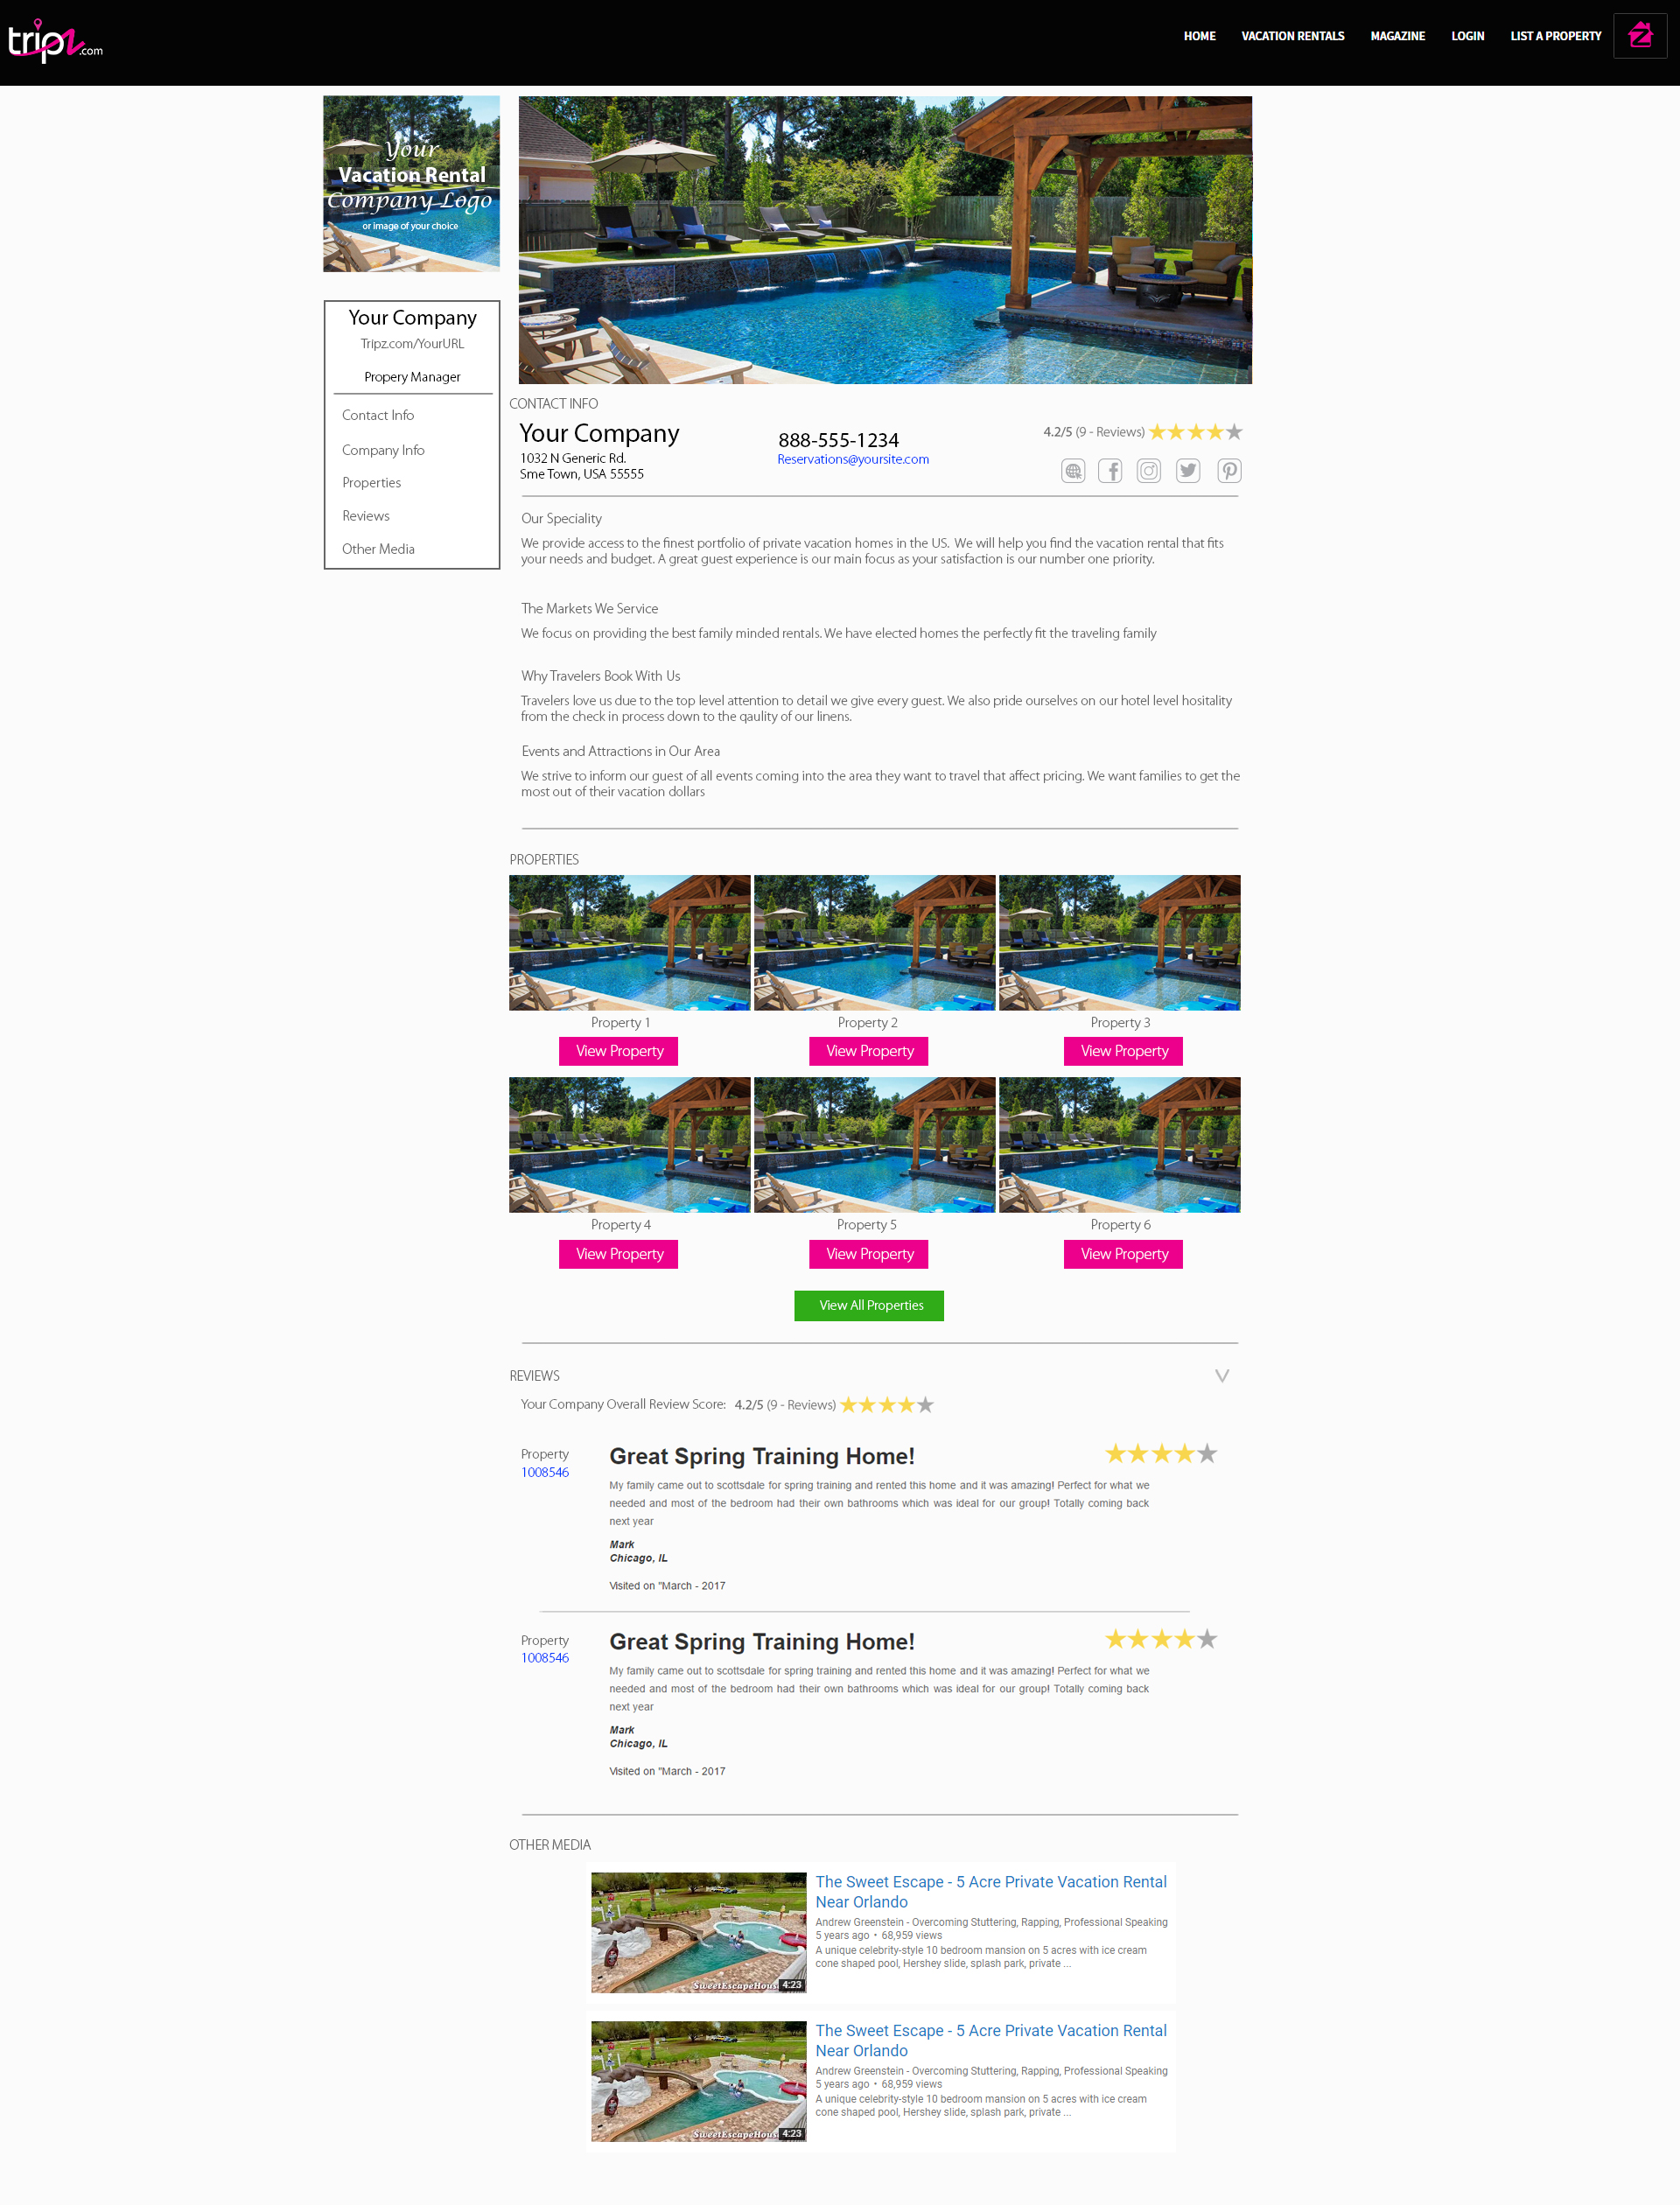 Branded Profile Page on Tripz.com